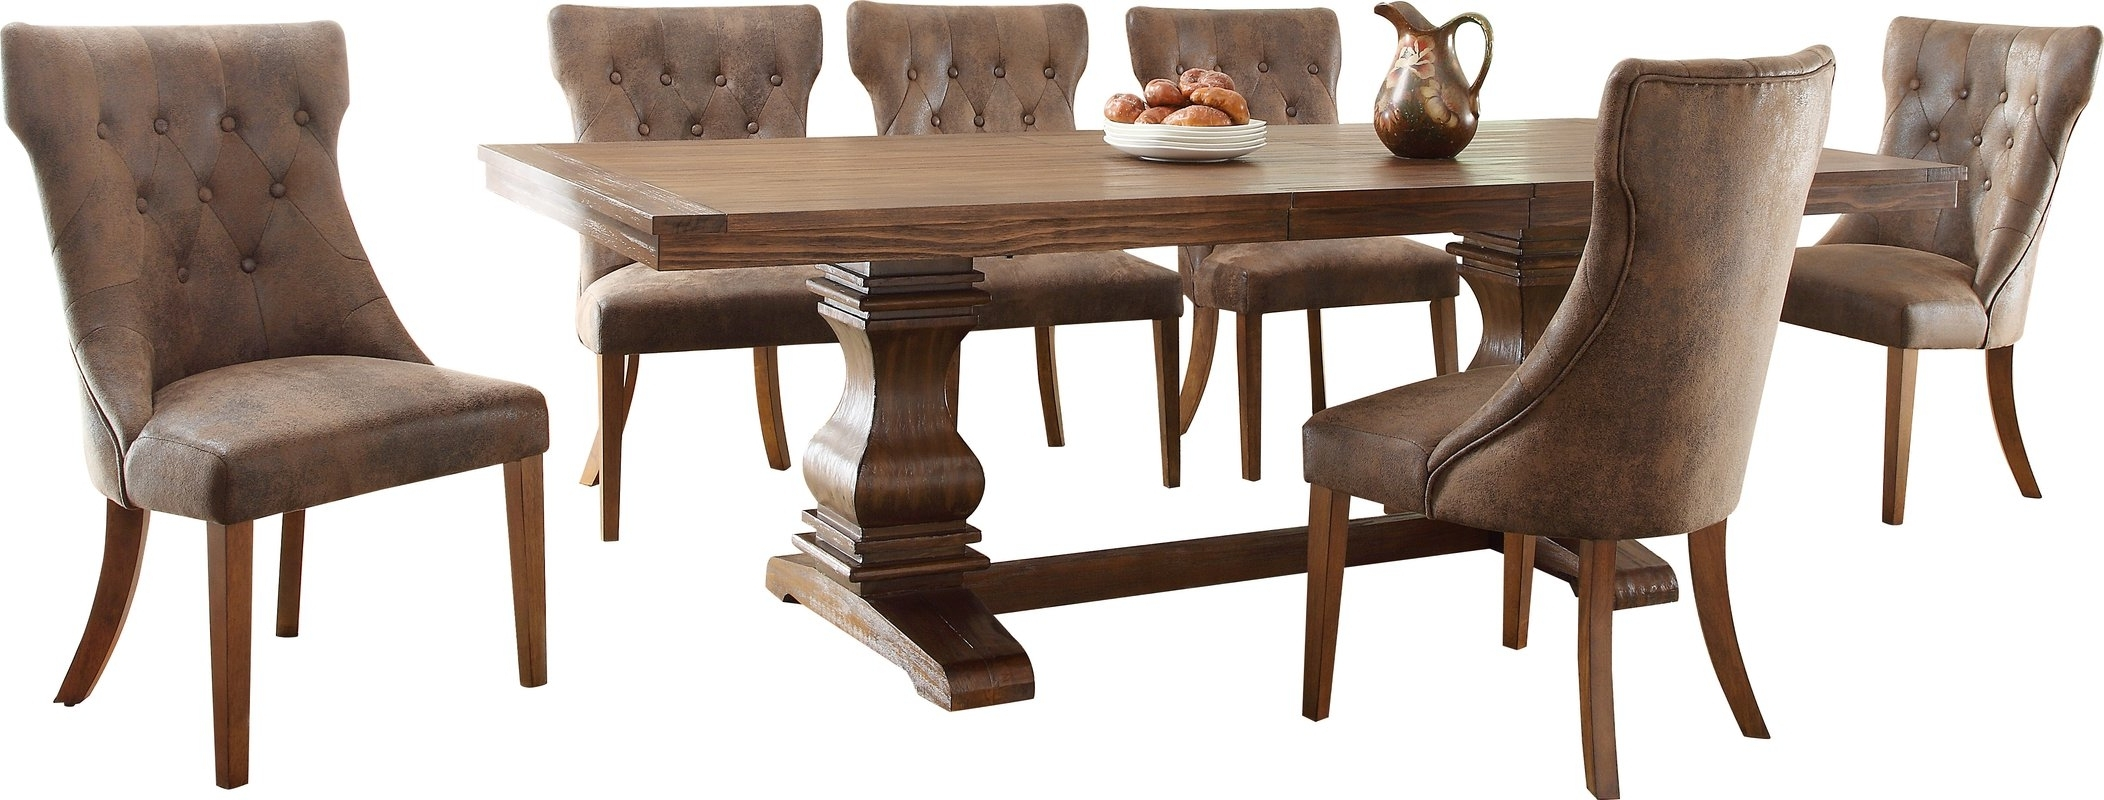 Selecting Dark Wood Round Dining Tables – Home Decor Ideas For Well Known Wood Dining Tables (View 3 of 25)